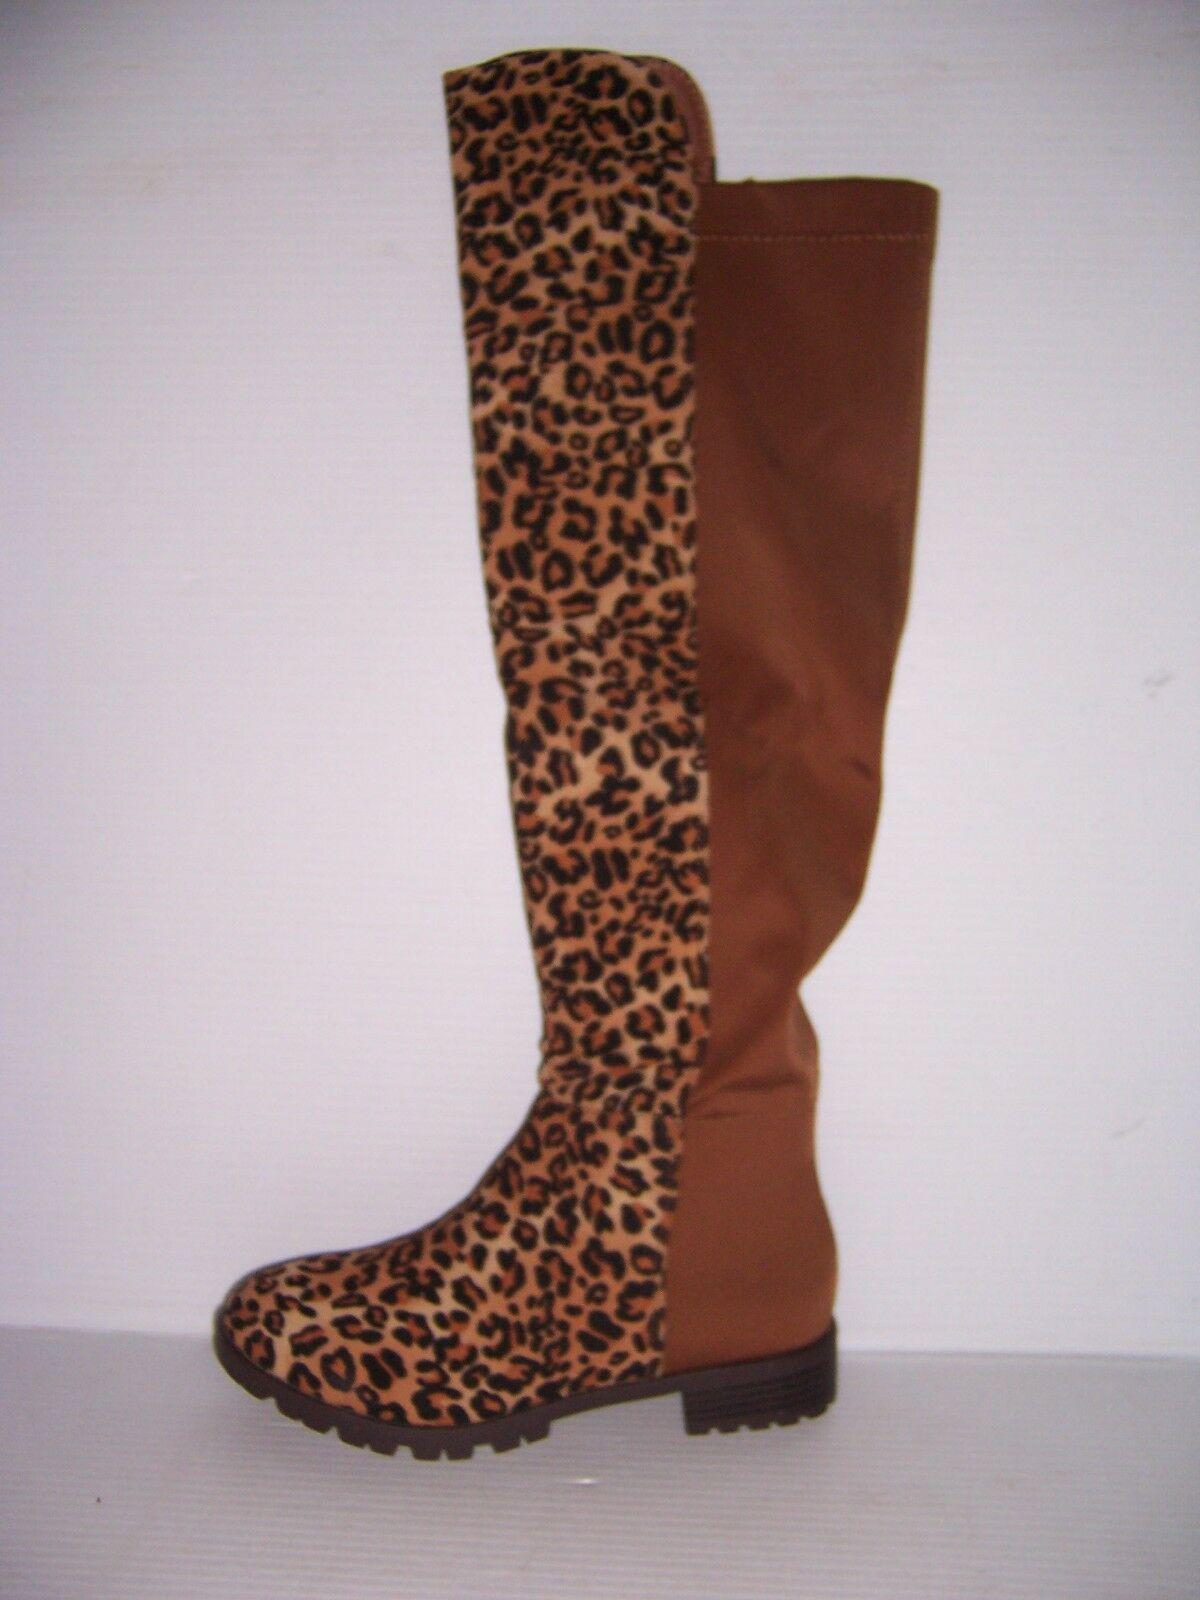 FOREVER FIFTY-50-3 Women's Two Tone Over The Knee Leopard Riding Boots 7.5 NEW